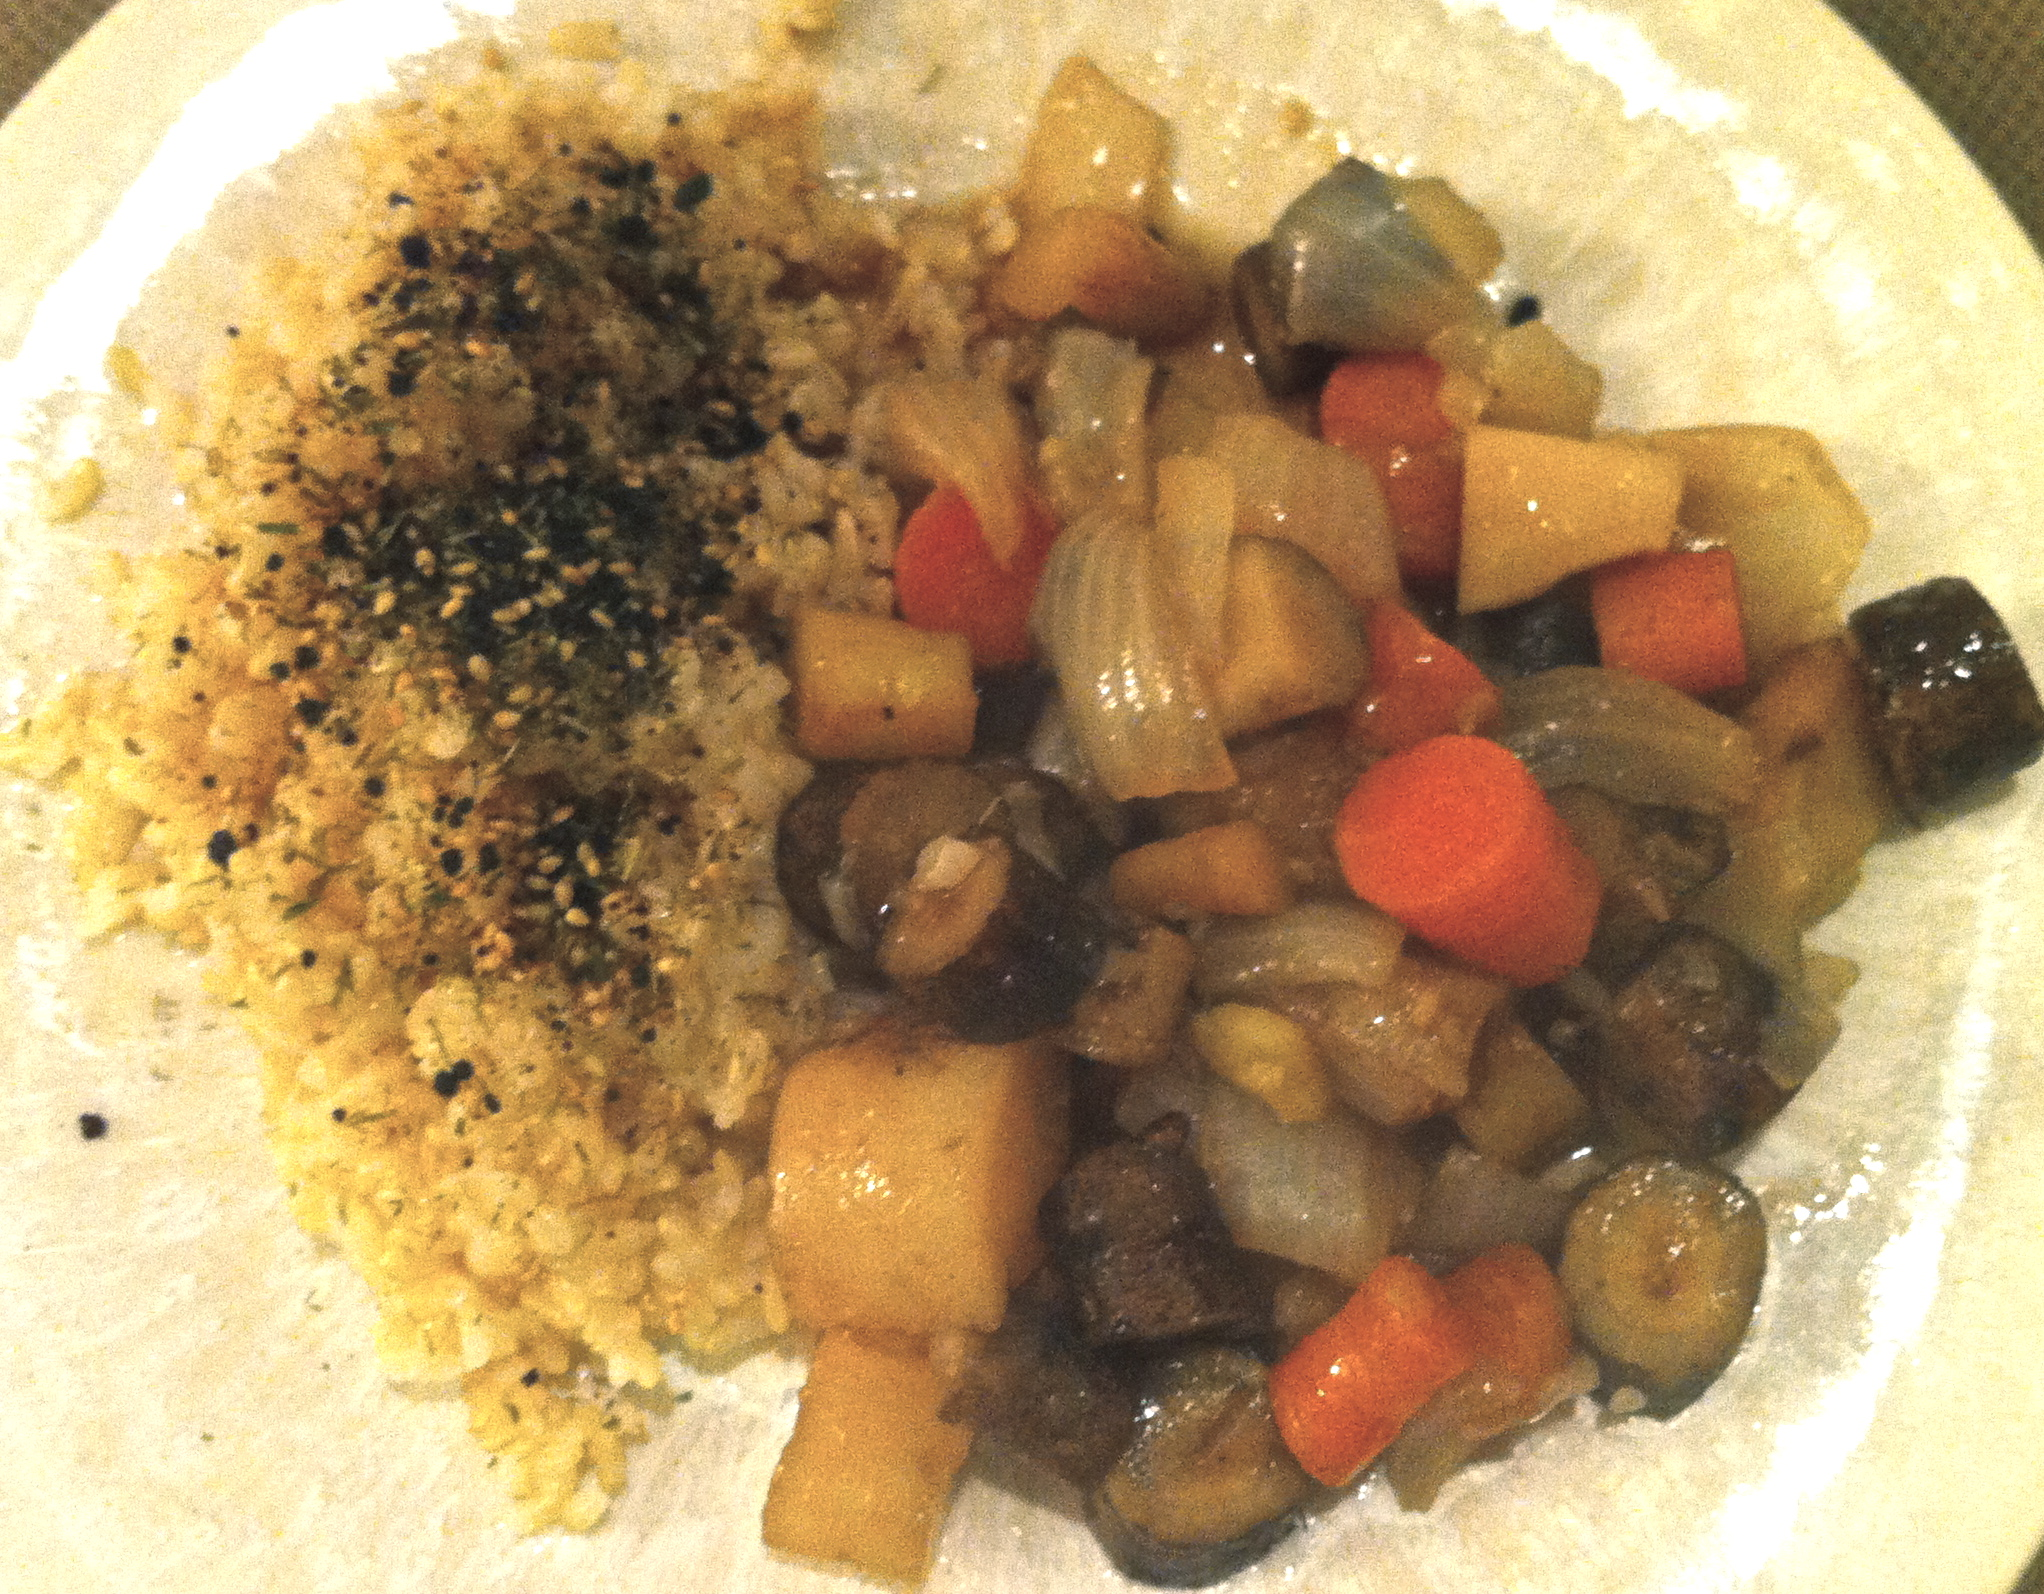 This dinner of brown rice and nishime vegetables is the perfect macrobiotic and vegan meal.